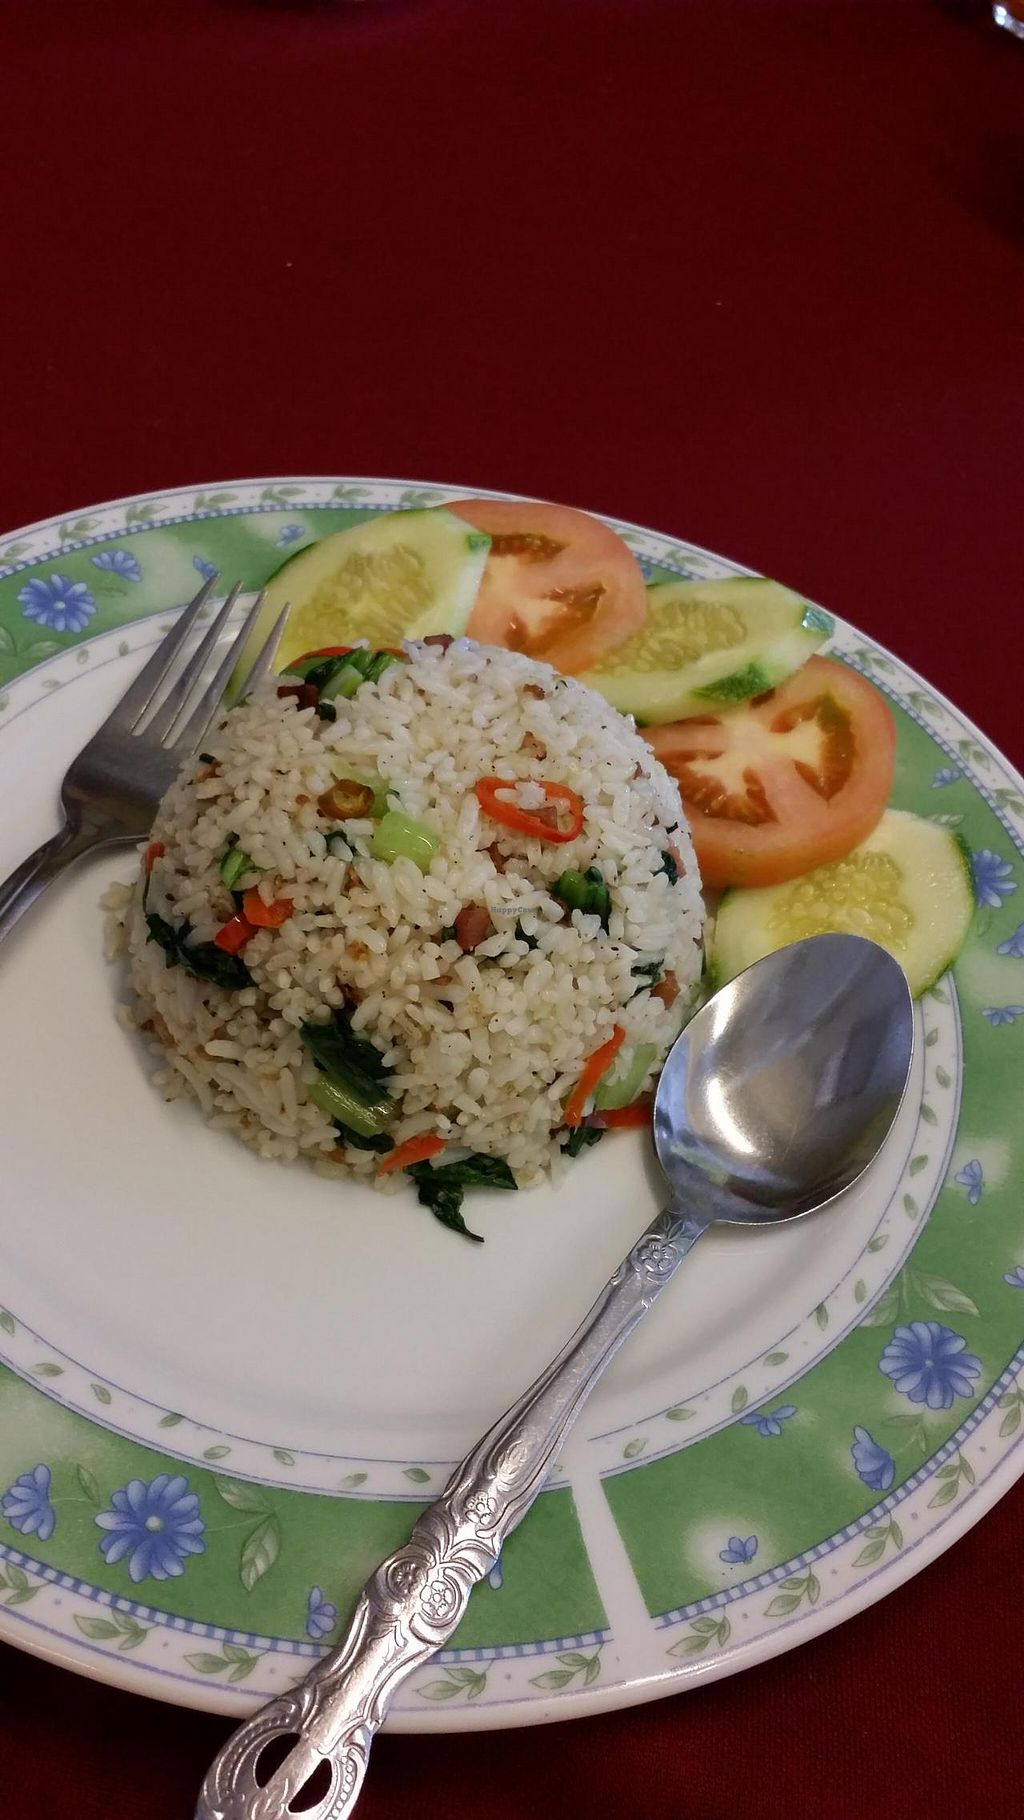 """Photo of Langkawi Vegetarian Restaurant  by <a href=""""/members/profile/walter007"""">walter007</a> <br/>Food <br/> July 23, 2014  - <a href='/contact/abuse/image/49124/74760'>Report</a>"""